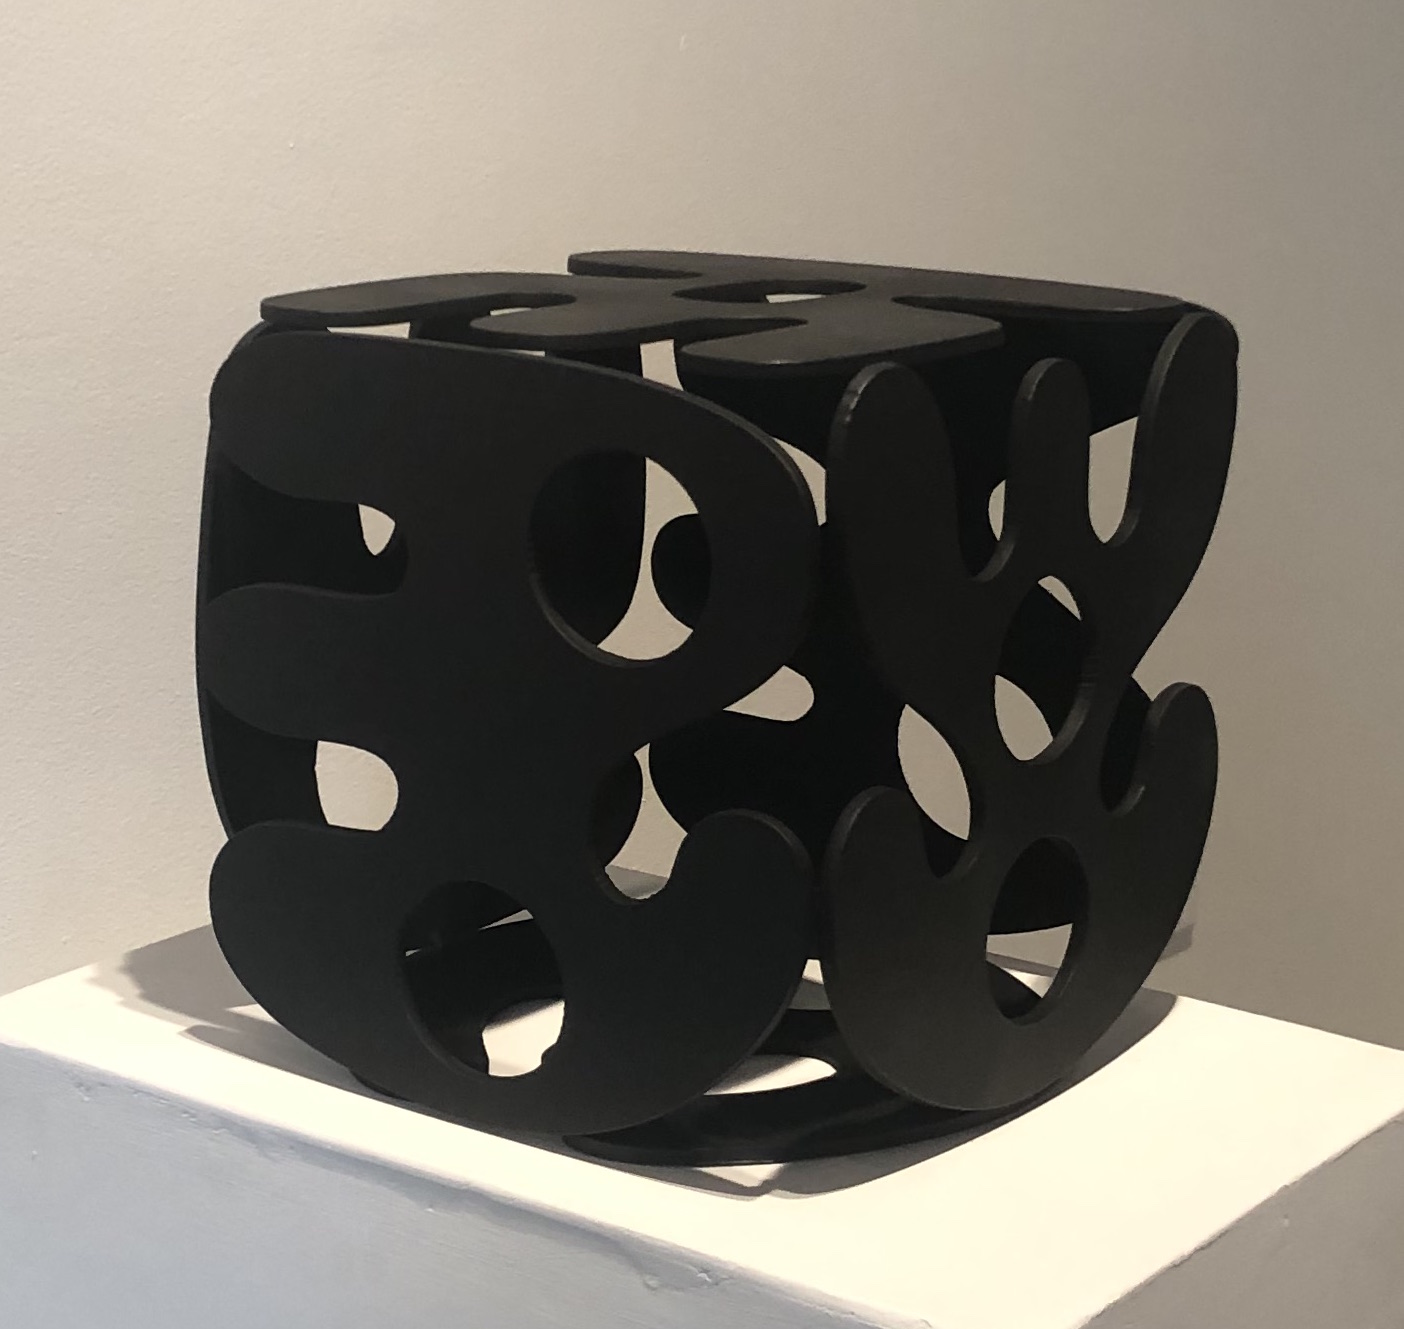 Cubed Alphabet (Black),  2019  Paint on steel  12 x 12 x 12 in.